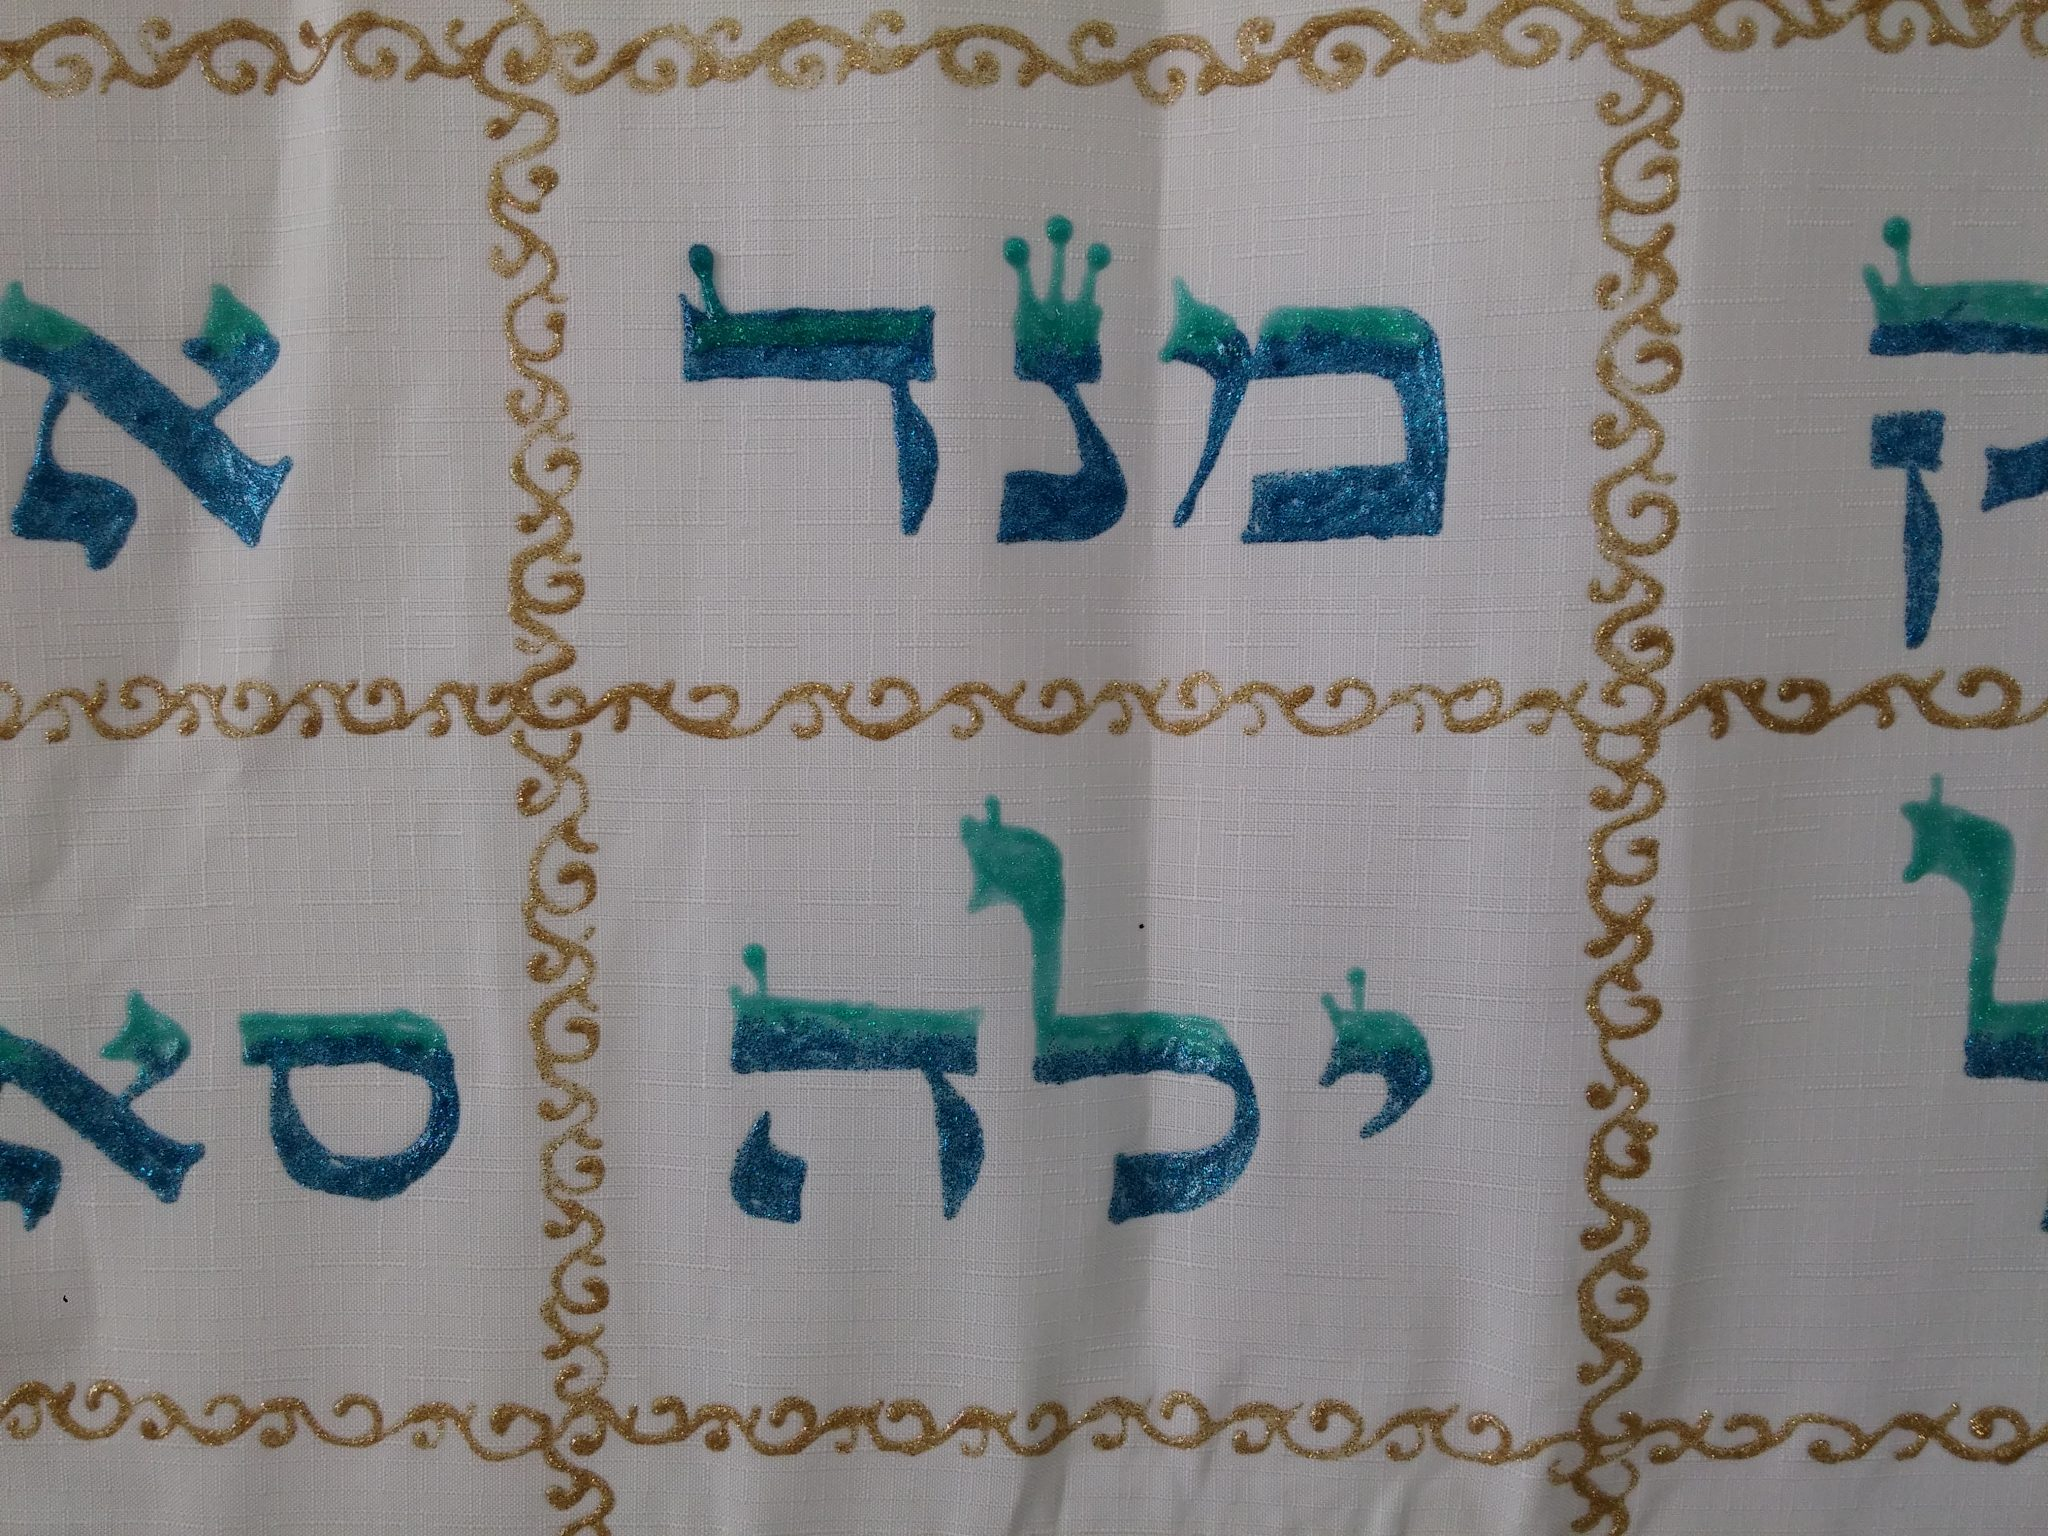 The 72 name of God, 77X56 inch, turquise/blue/gold